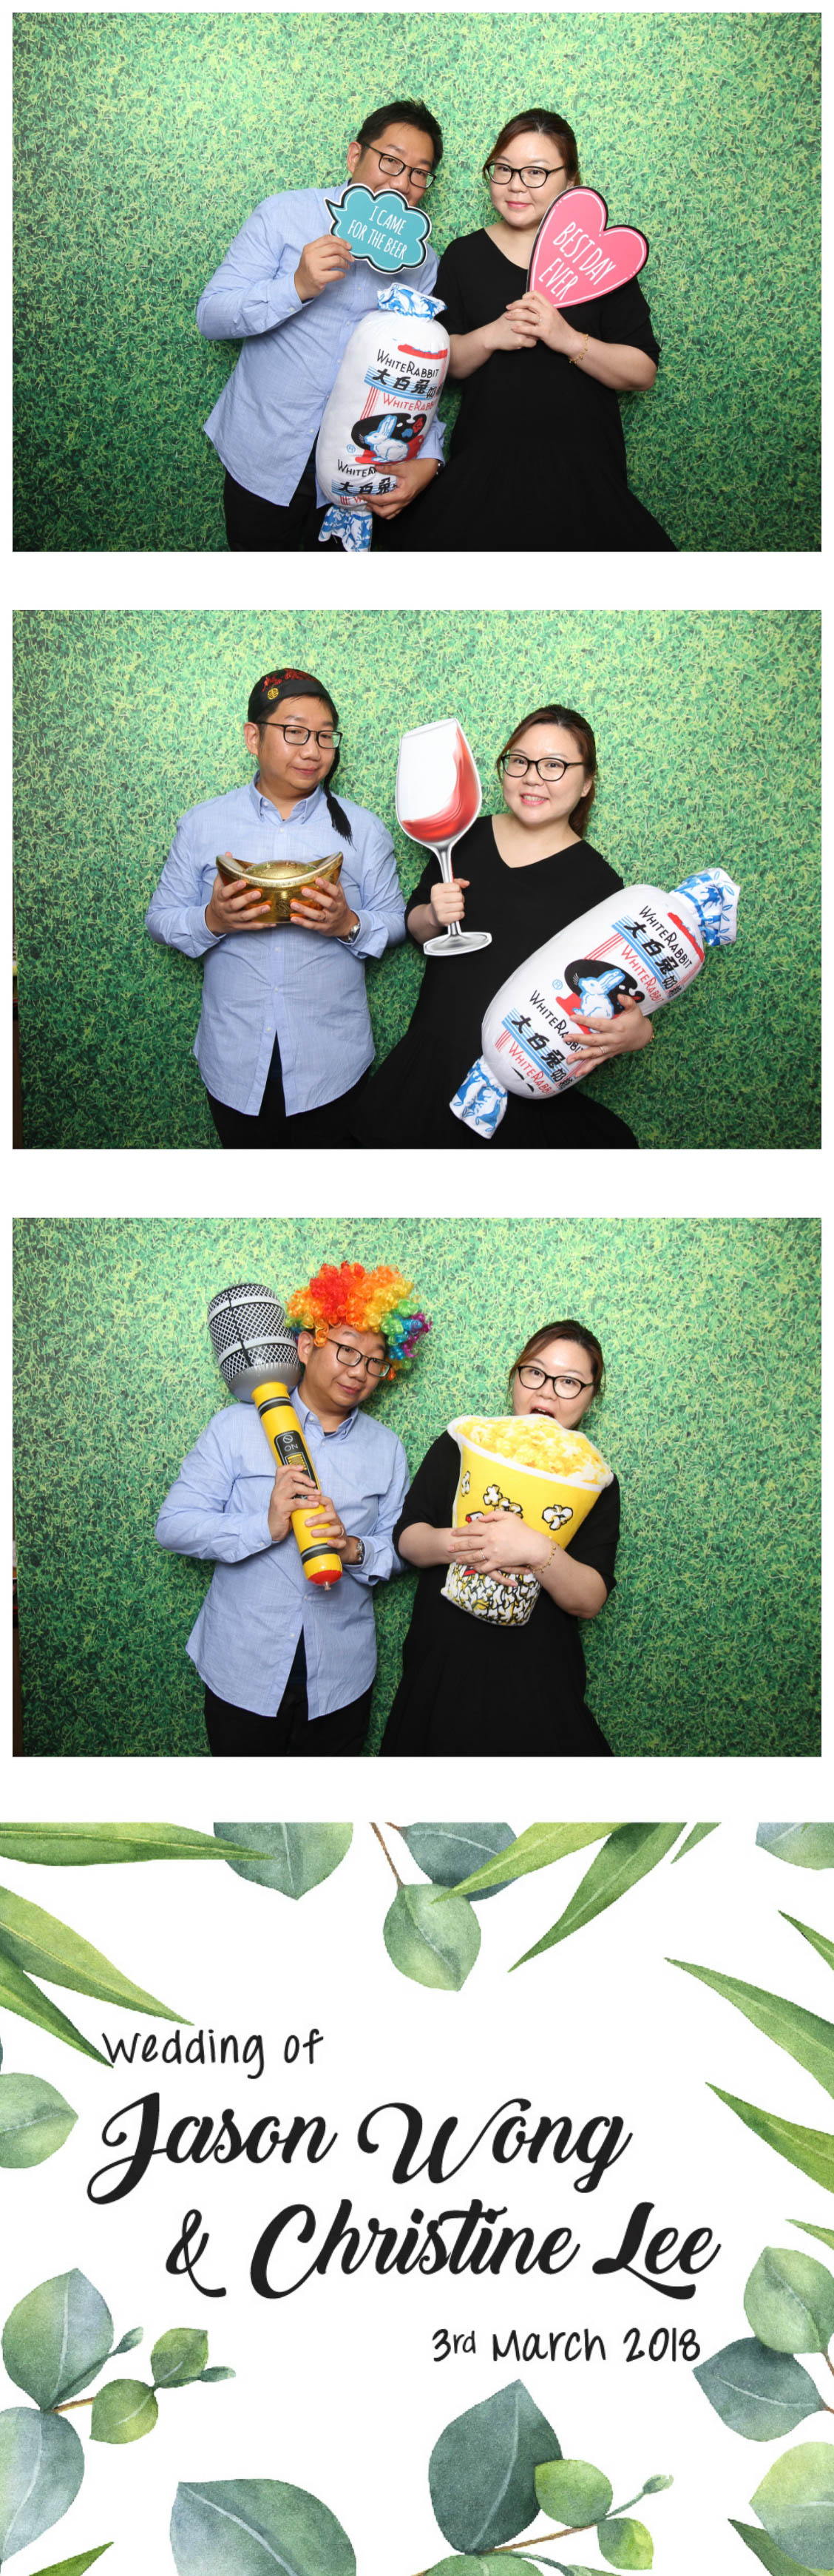 Photobooth 0302-25